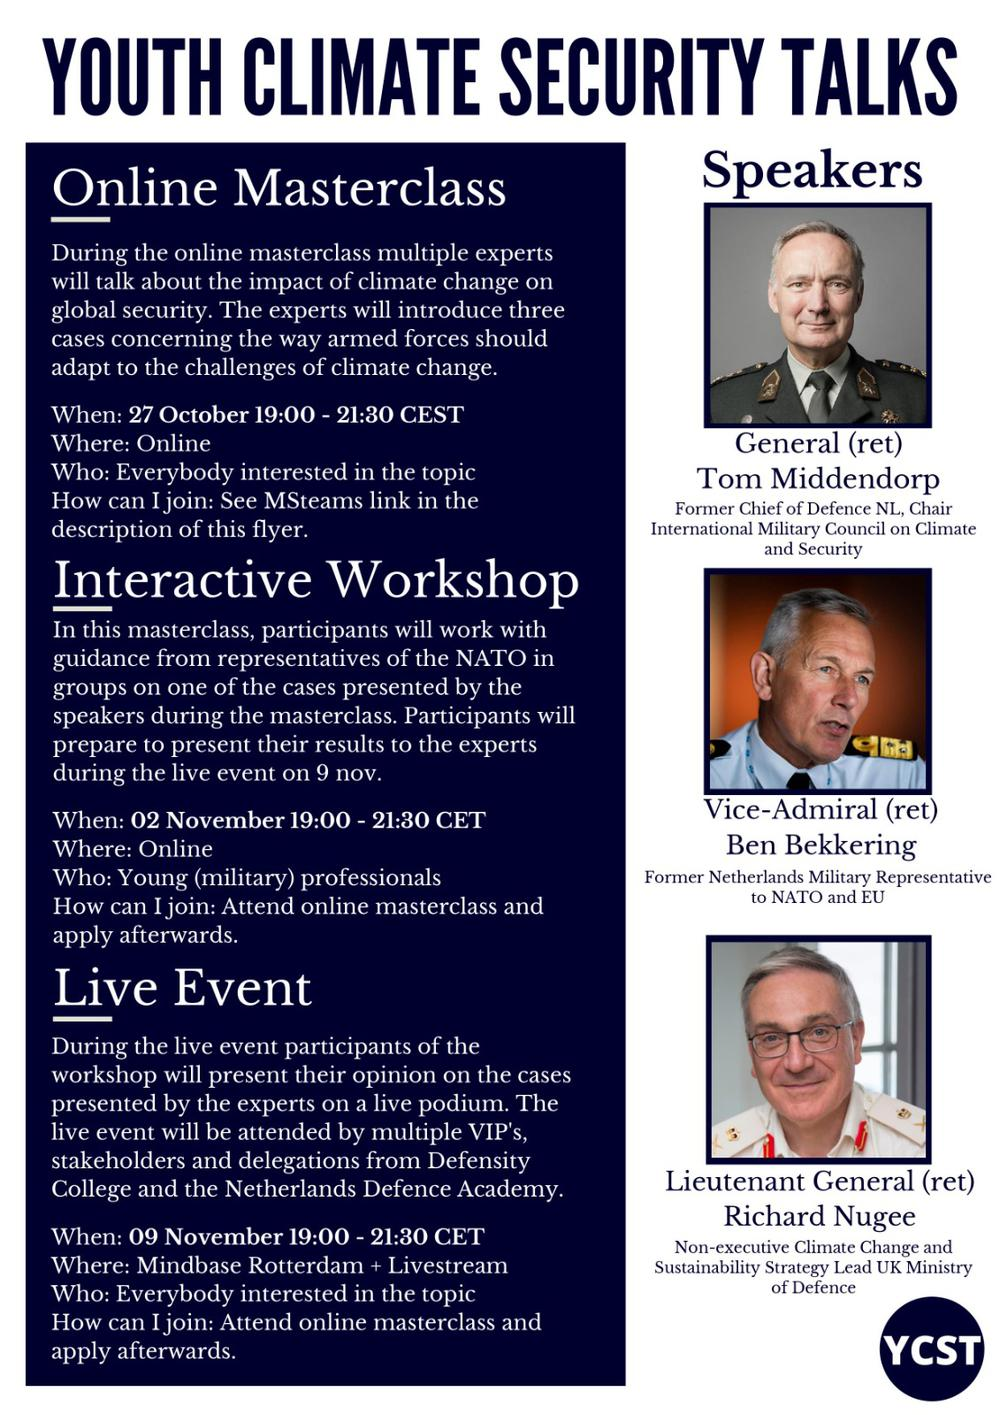 Online Masterclass: Impact of Climate Change on Global Security